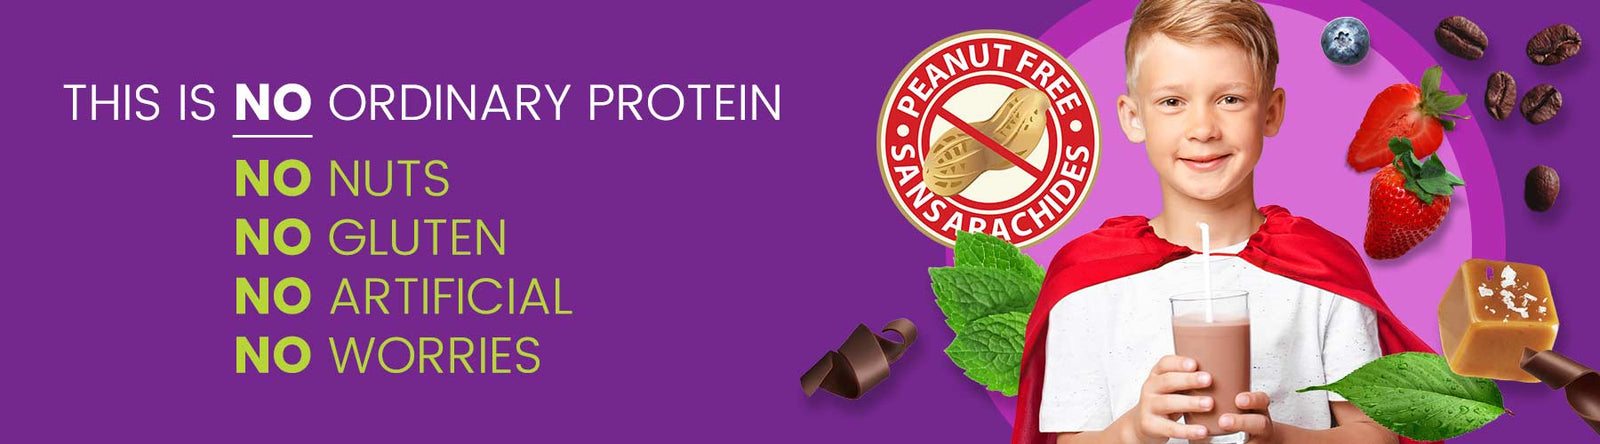 Nut Free and Allergen Free Protein Powder | Nutracelle